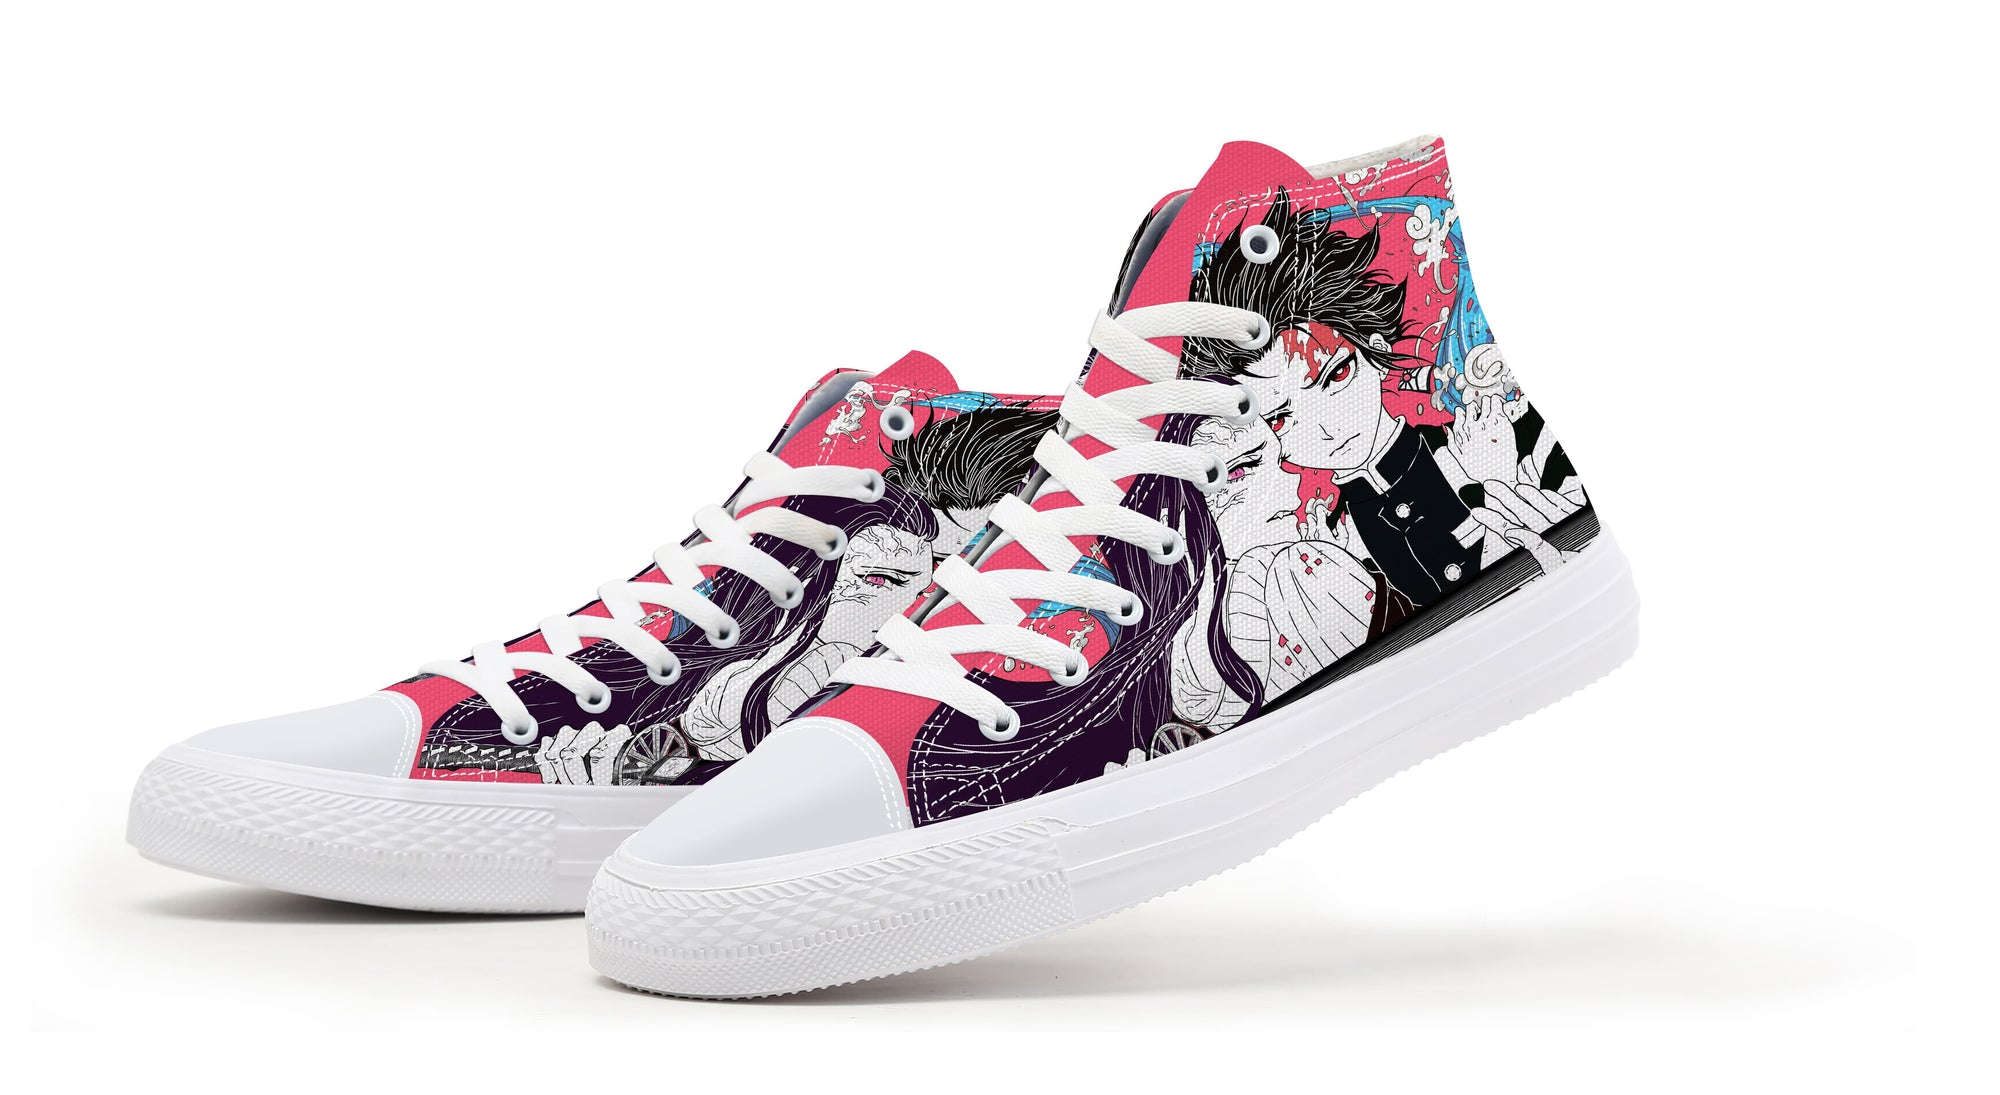 Tanjiro Nezuko Kamado Demon Duo Sneakers Demon Slayer Kimetsu No Yaiba Shoes